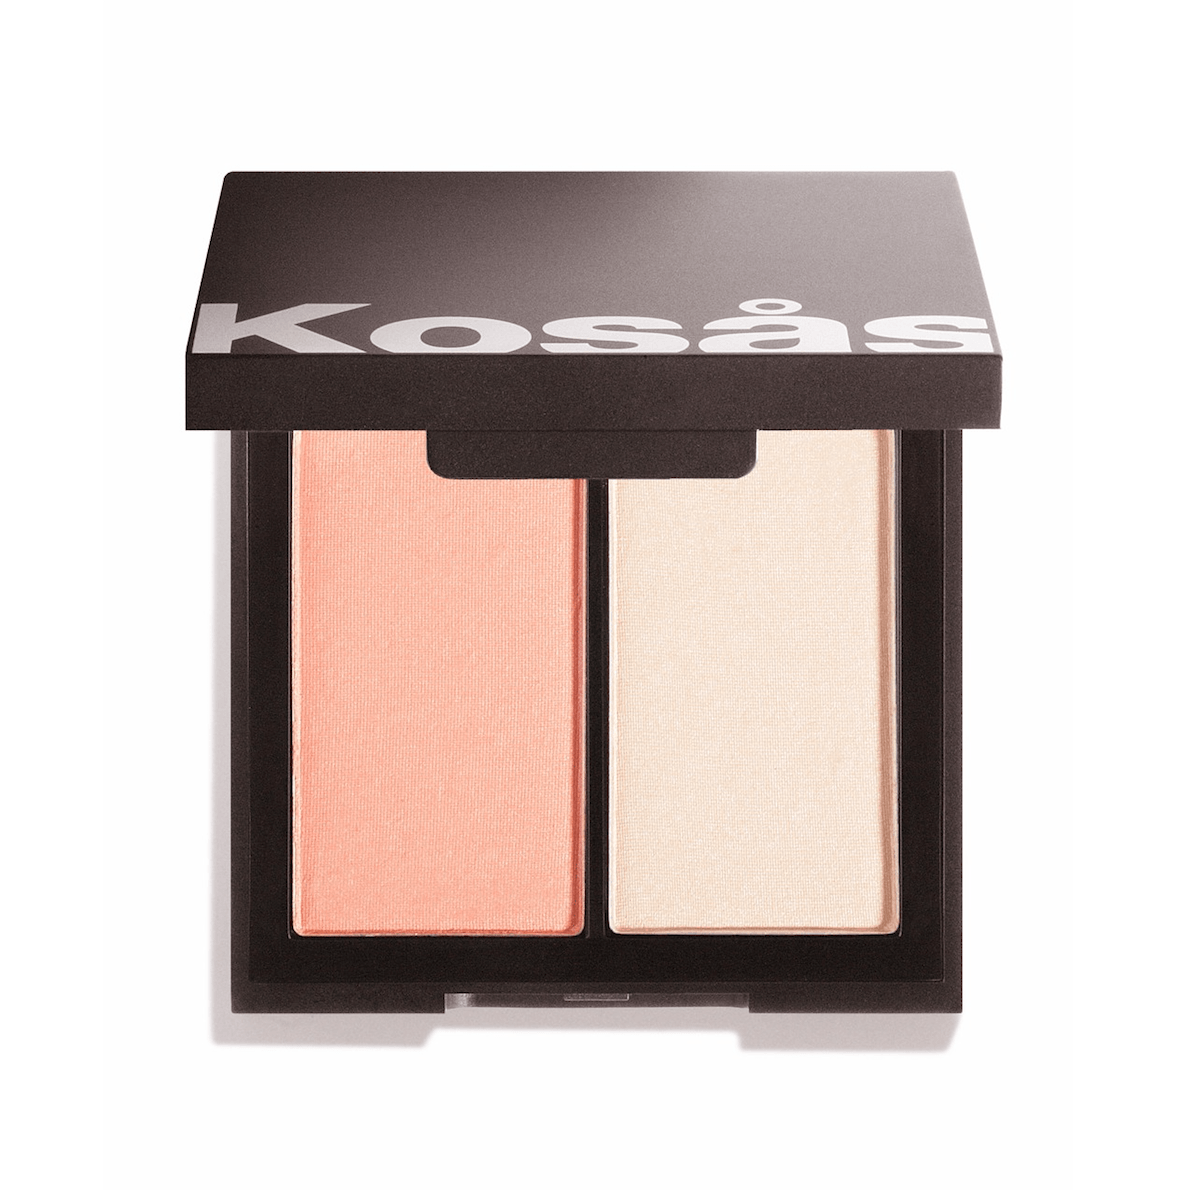 Kosas Cosmetics Saturate + Illuminate Powder Collection PAPAYA 1976 Cosmetics - Cheeks Kosas